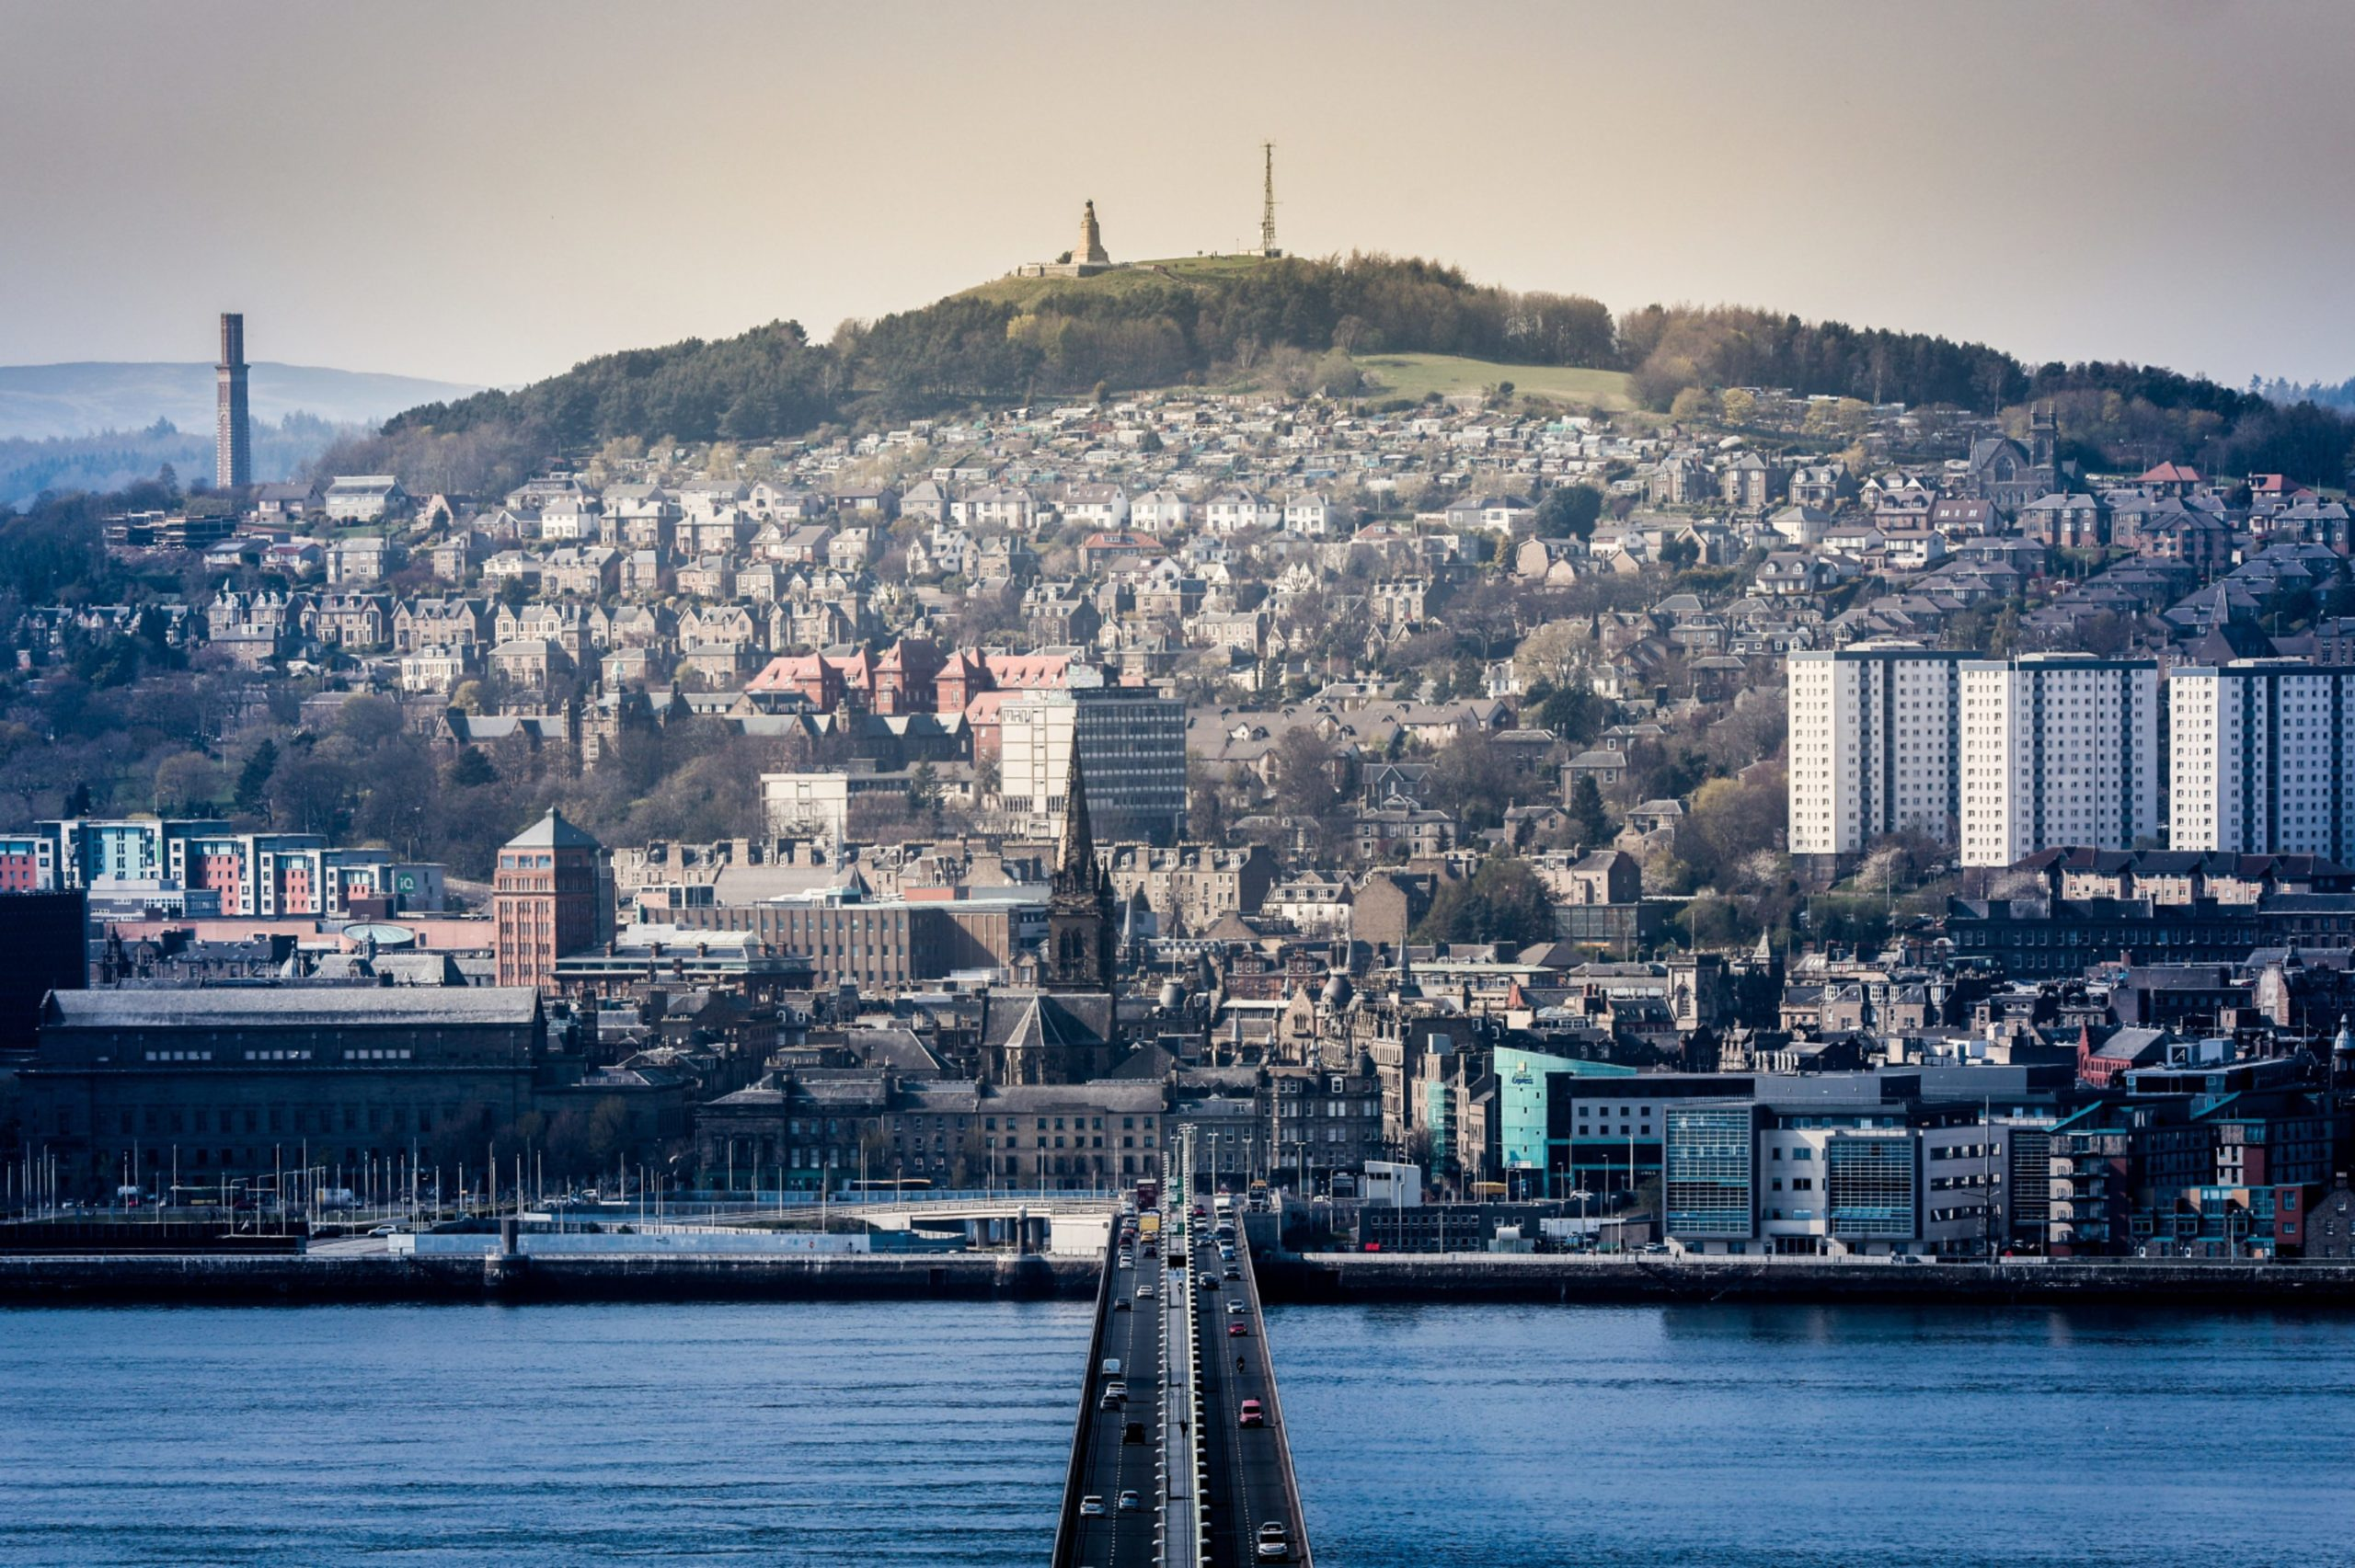 Dundee's population is set to fall over the next 25 years.